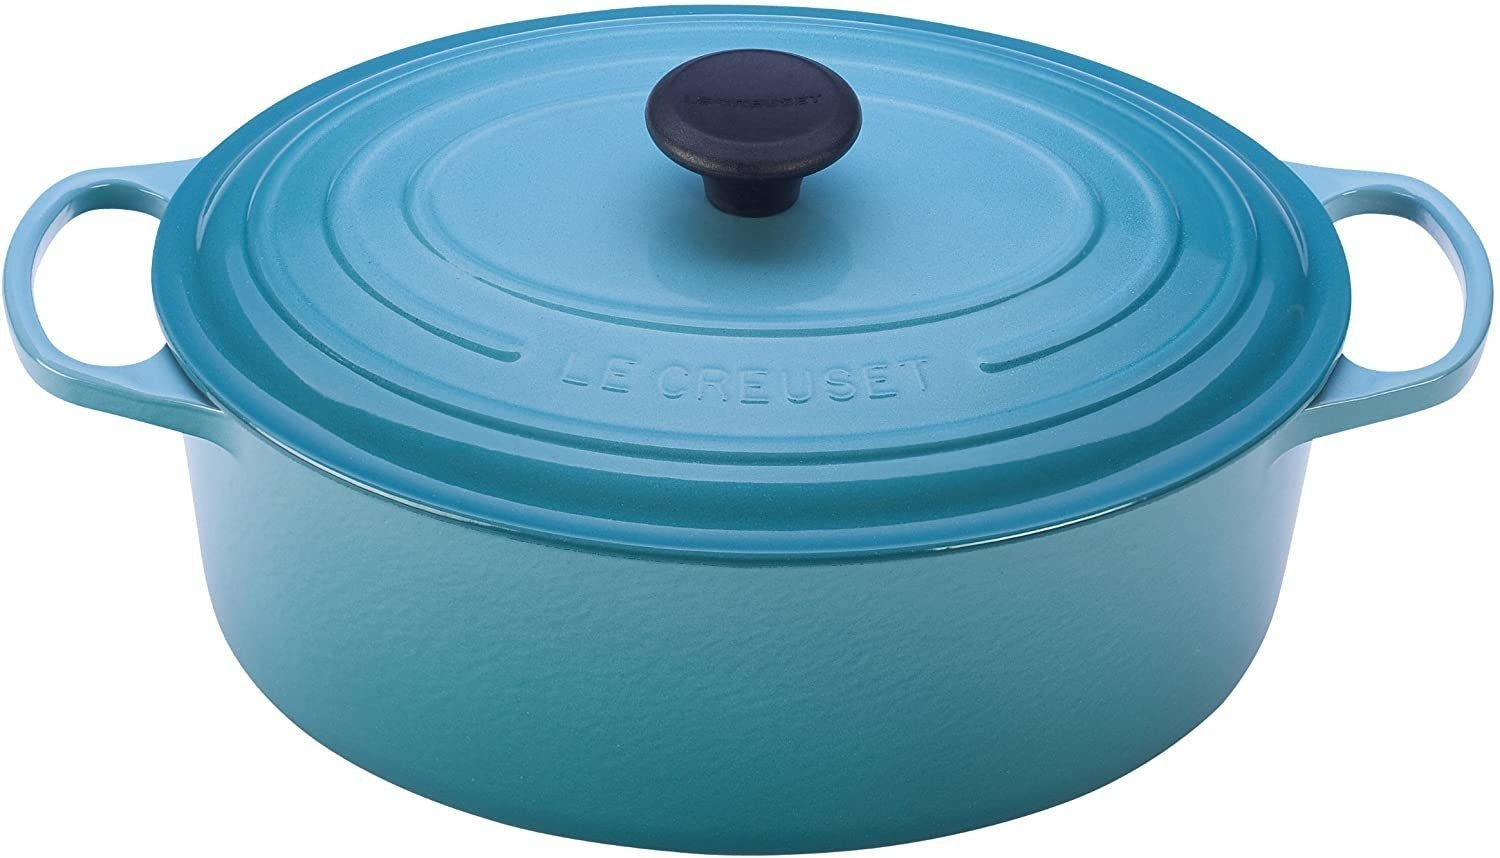 Le Creuset Cast Iron French Oven